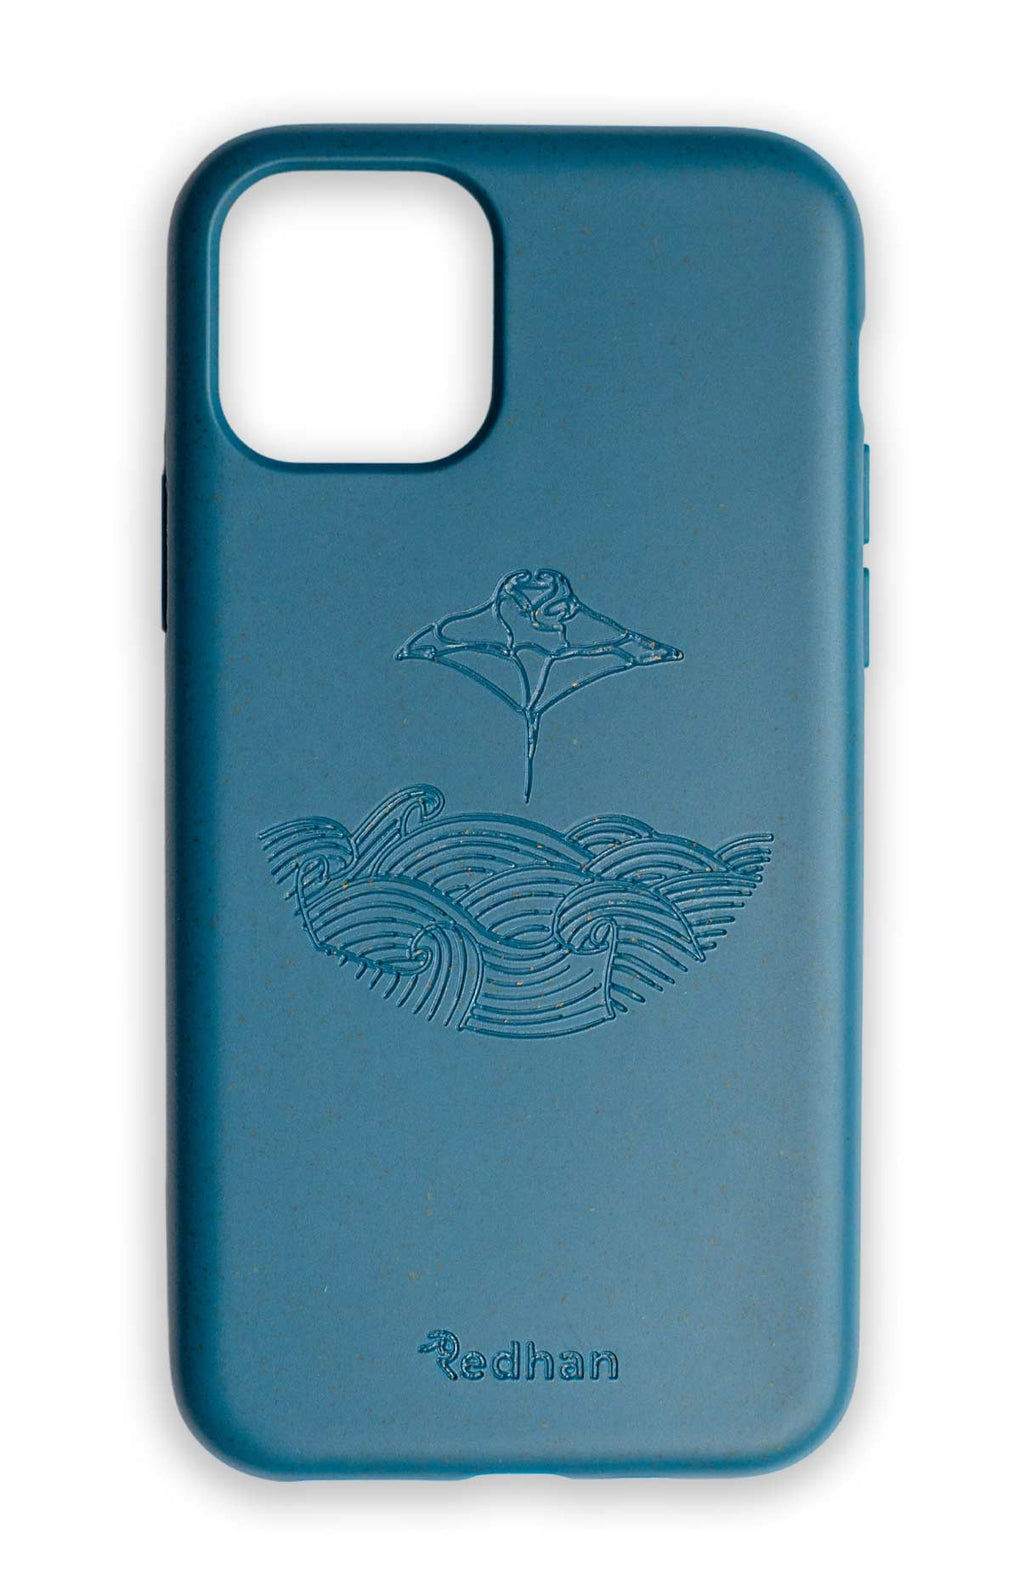 Eco Friendly iPhone 11 Pro Max Phone Case - Manta Ray in Navy Blue